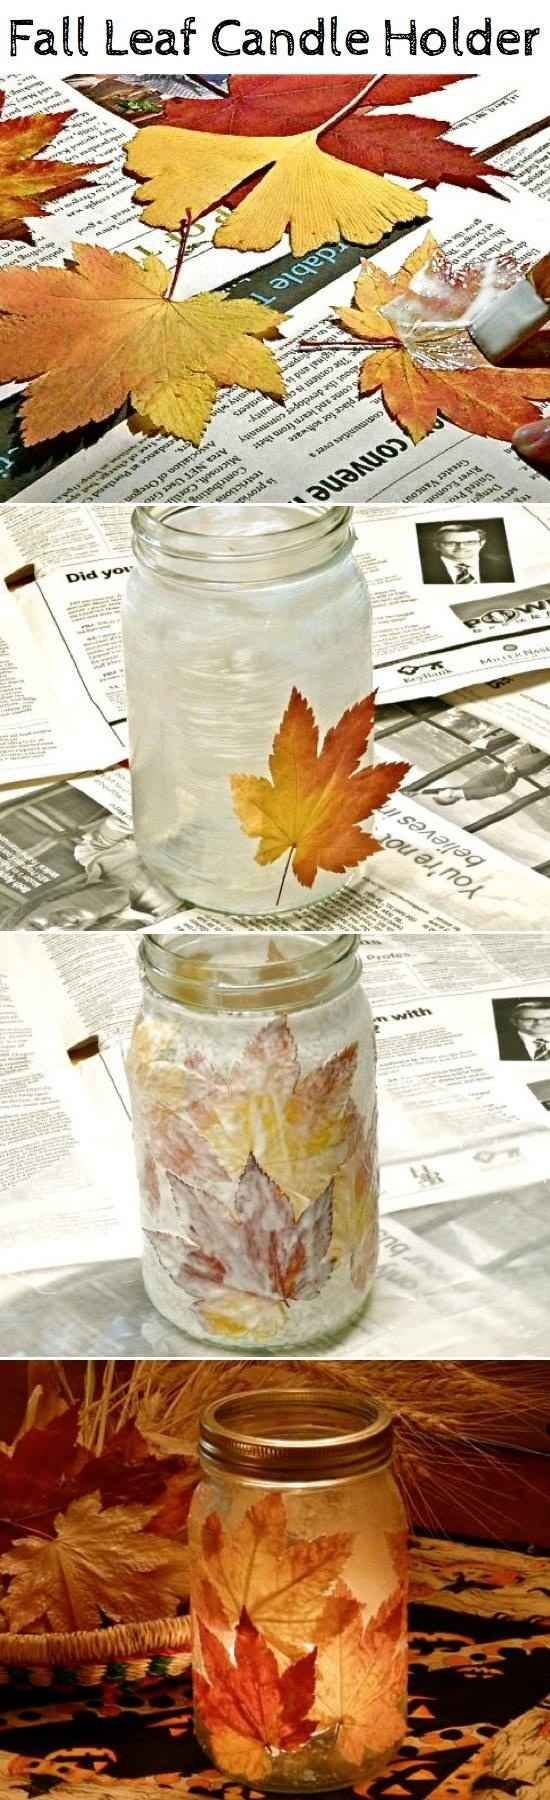 Fall Leaf Candle Holder